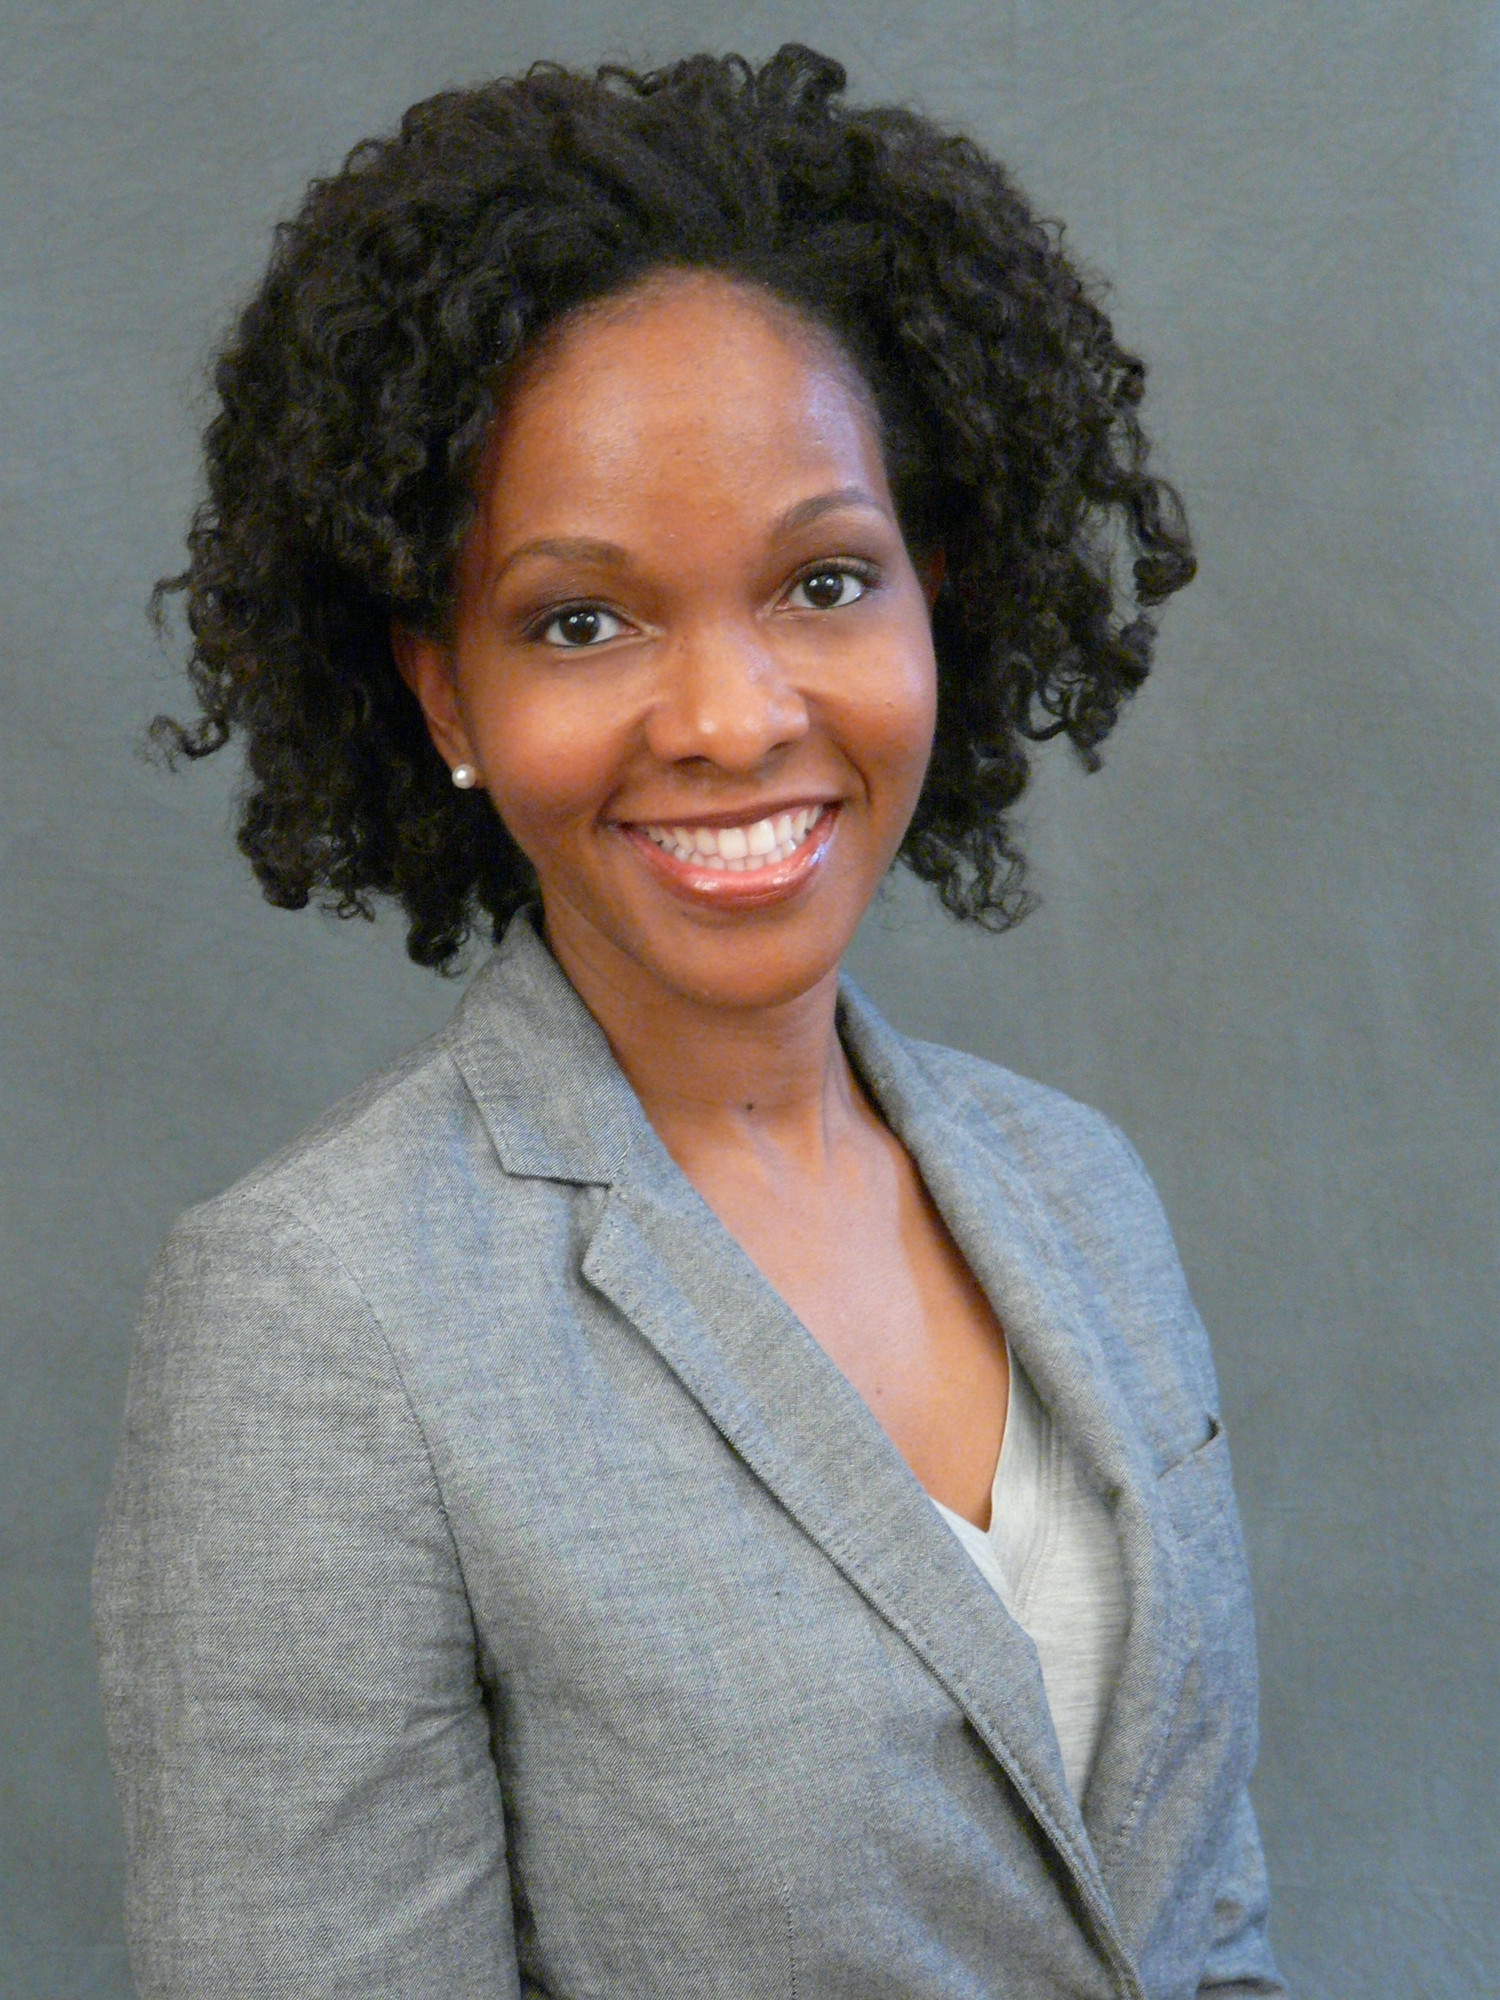 Princeton professor, activist and author Imani Perry will give the keynote address for the U's 31st annual MLK Week. She will discuss recent police shootings, the battle of racial inequality and American race relations in the 21st century.